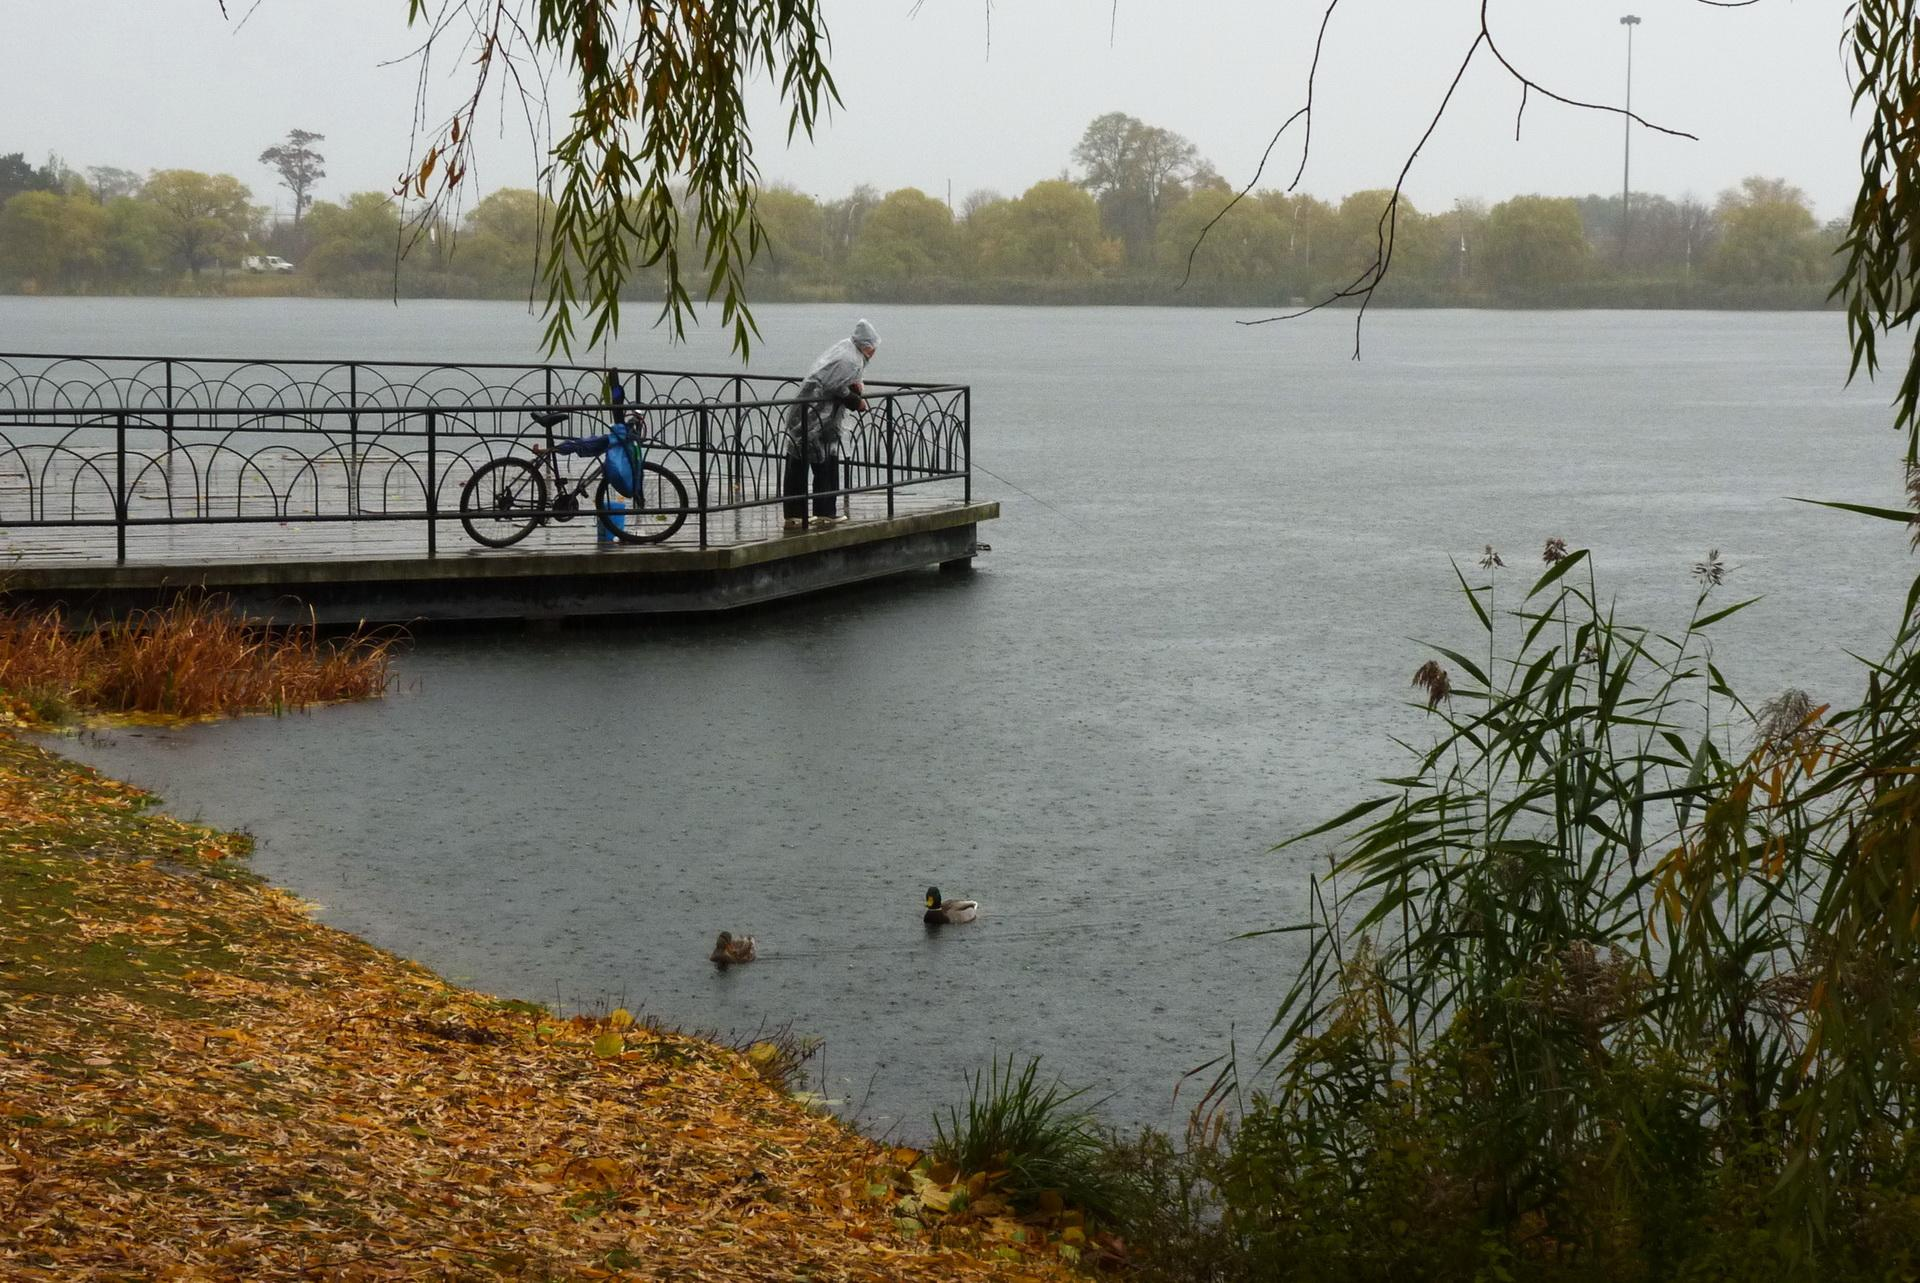 Fishing at Grenadier Pond. Photo: Karen Yukich